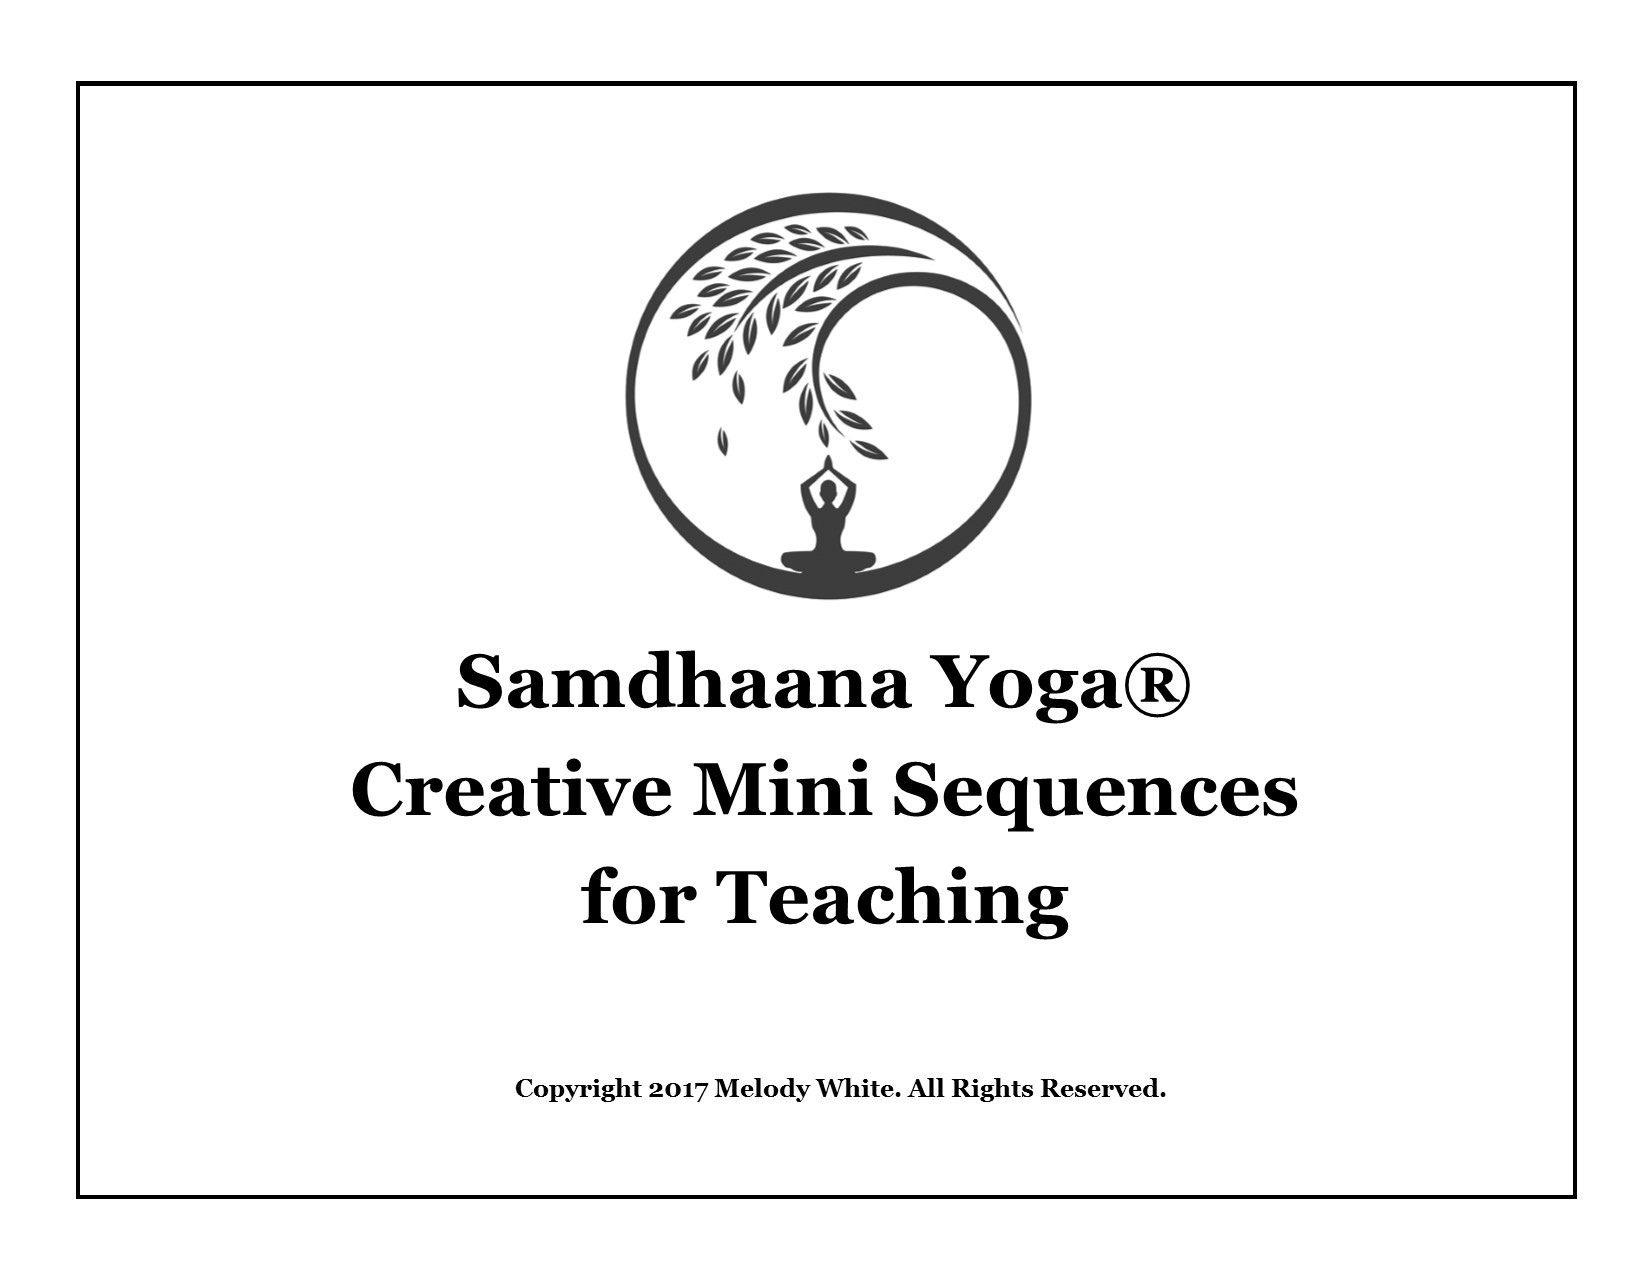 samdhaana yoga creative mini sequences